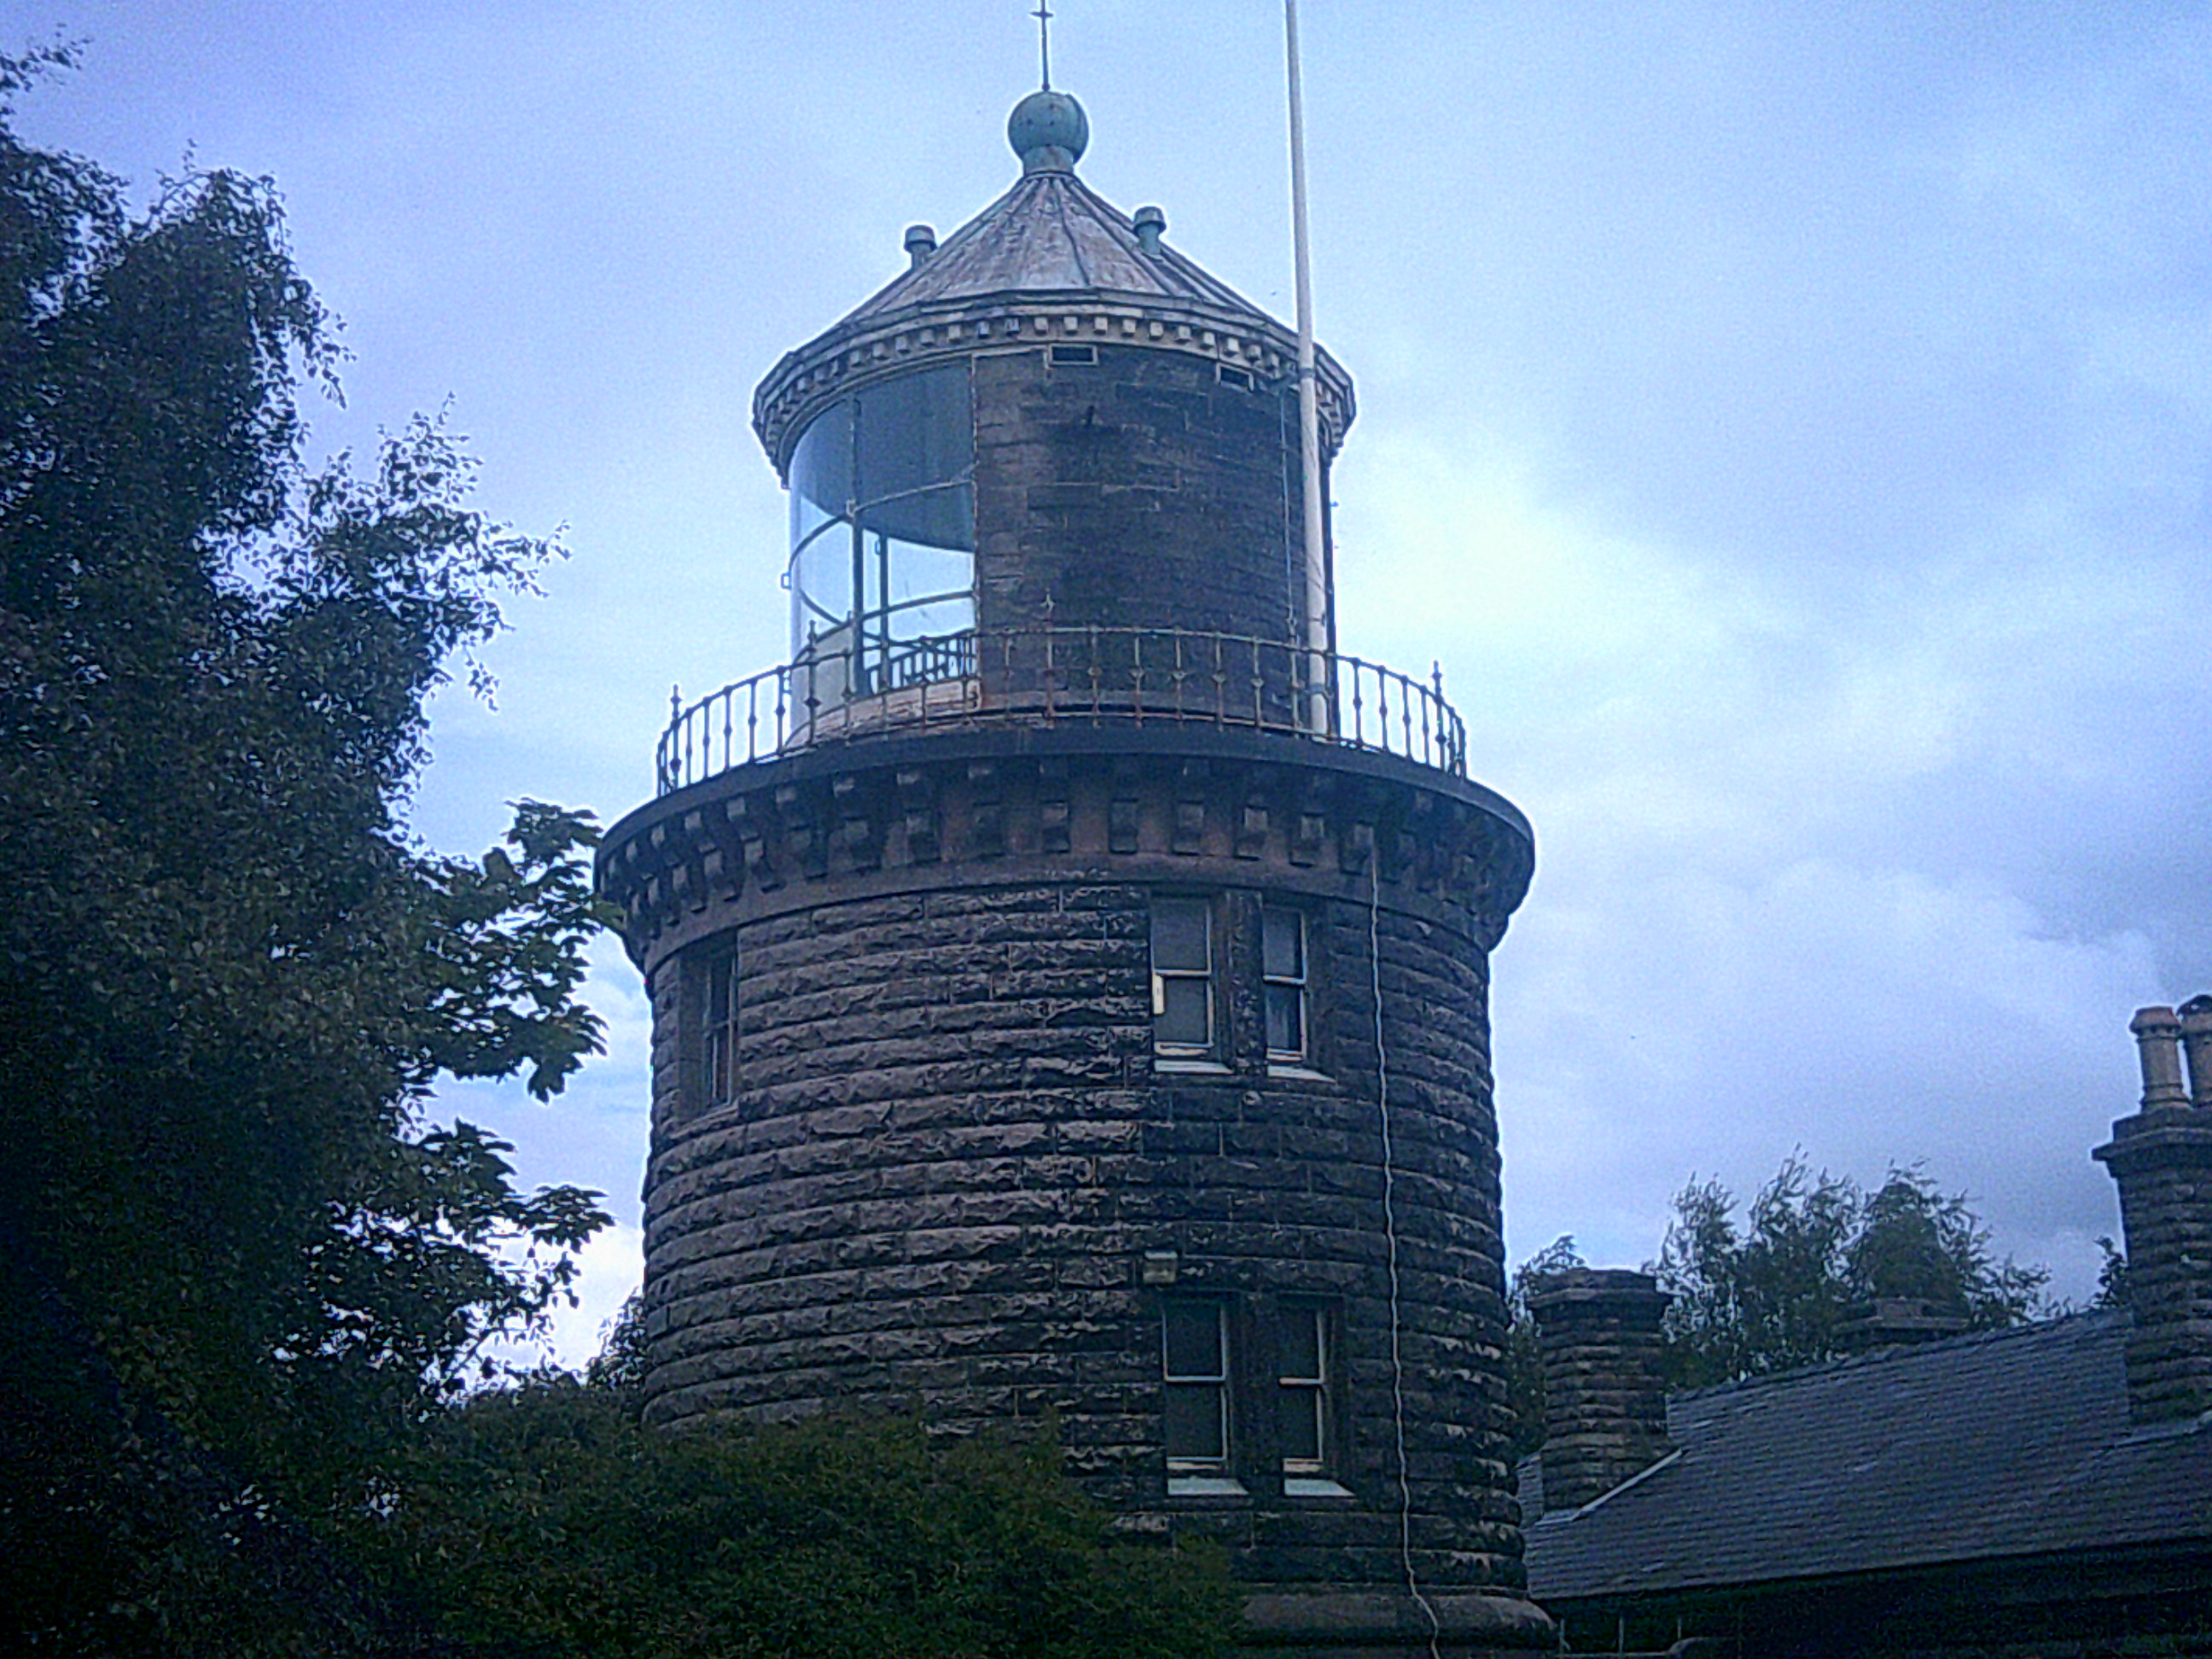 Bidston Lighthouse, Wilding Way, Bidston Hill 14th August 2014 Listed Building Consent LBC/14/00584 (erection of a Radio Antenna to the outside of Bidston Lighthouse)